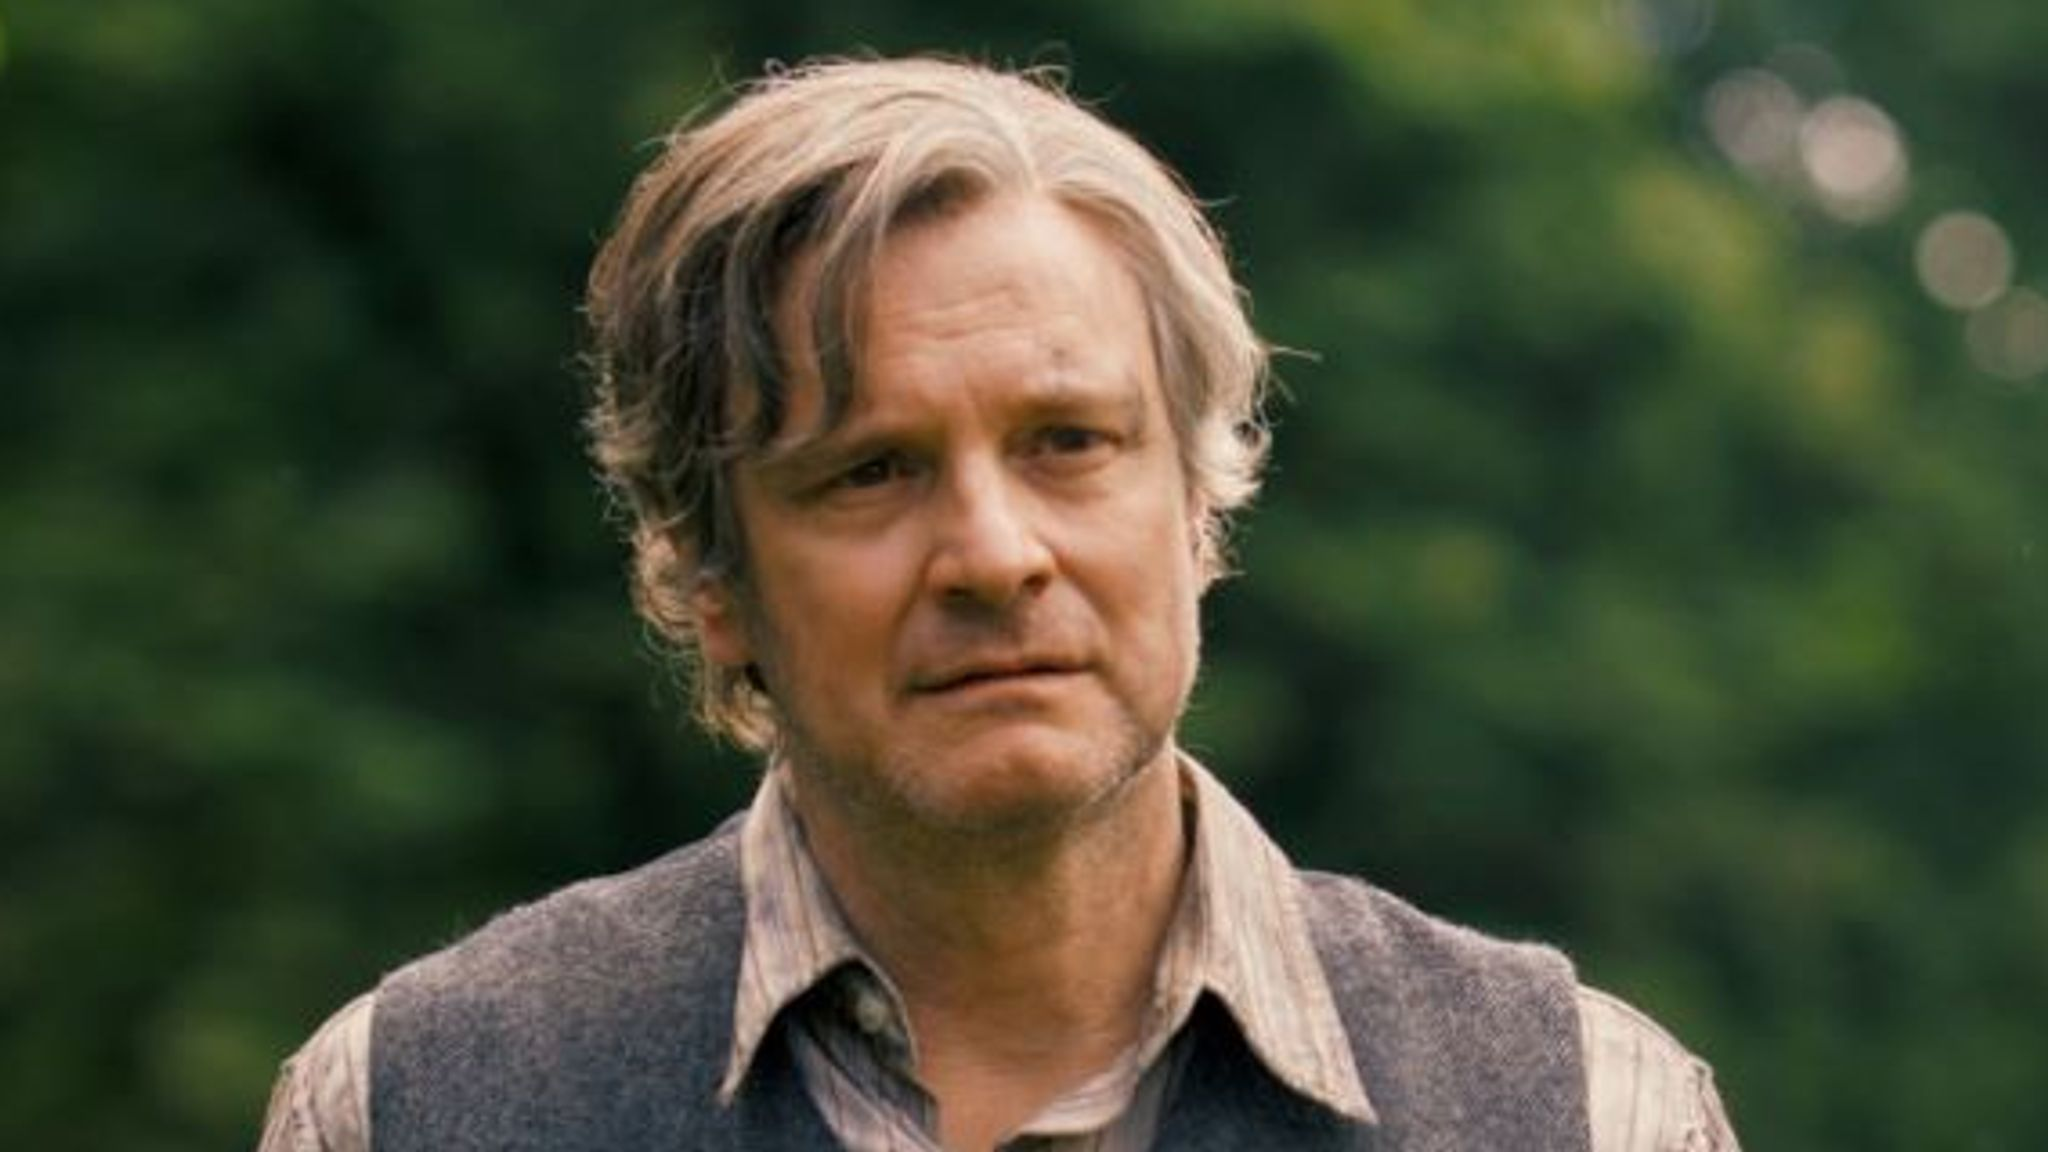 Colin Firth plays Lord Archibald Craven. Pic: StudioCanal/Sky